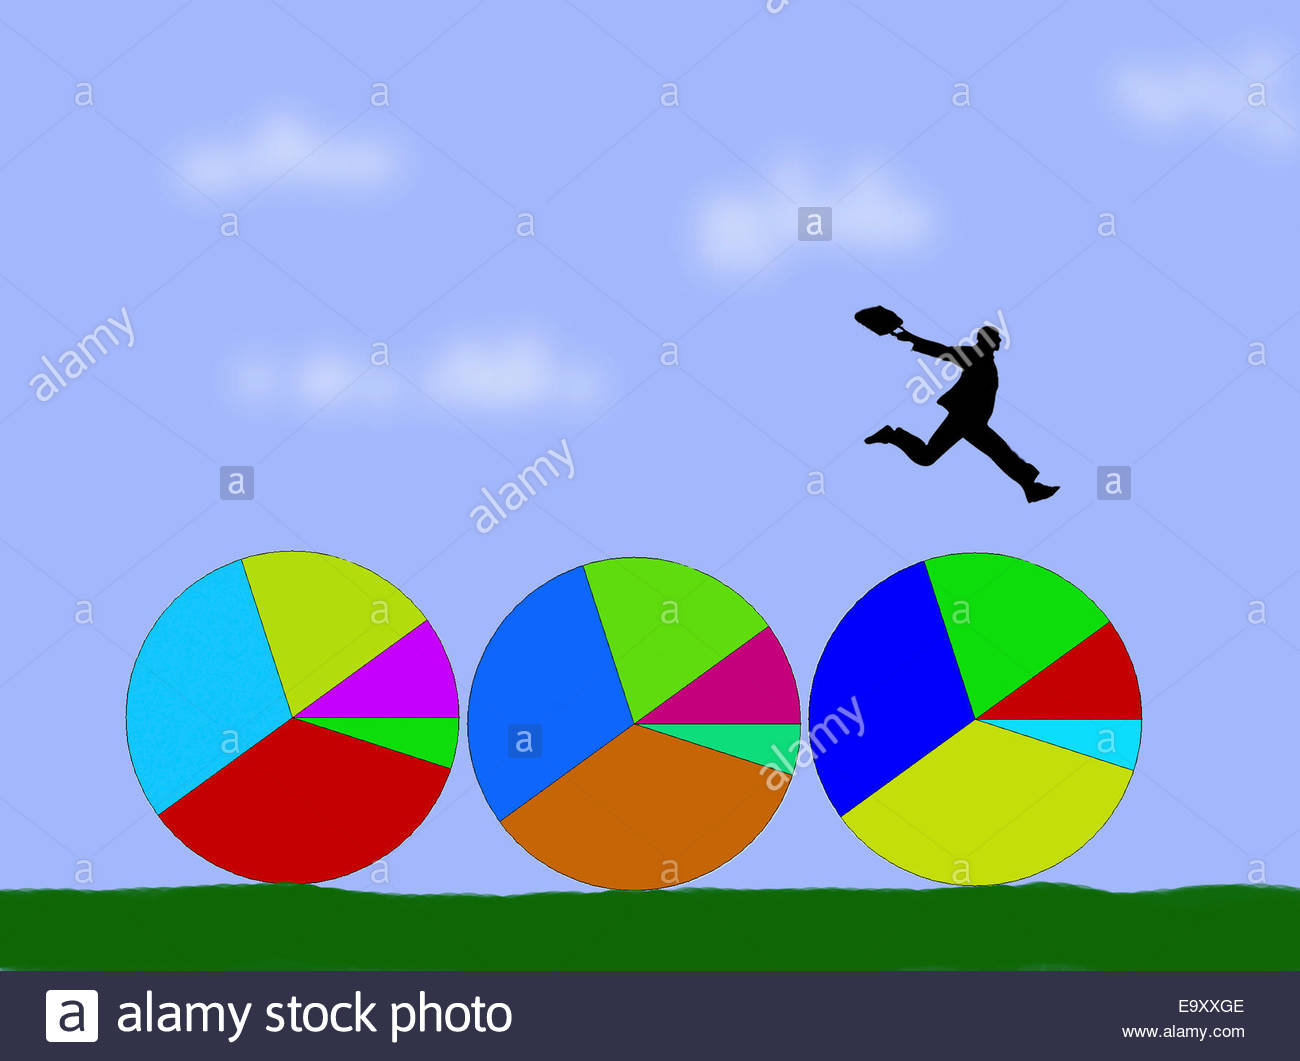 Businessman jumping over row of pie charts Stock Photo